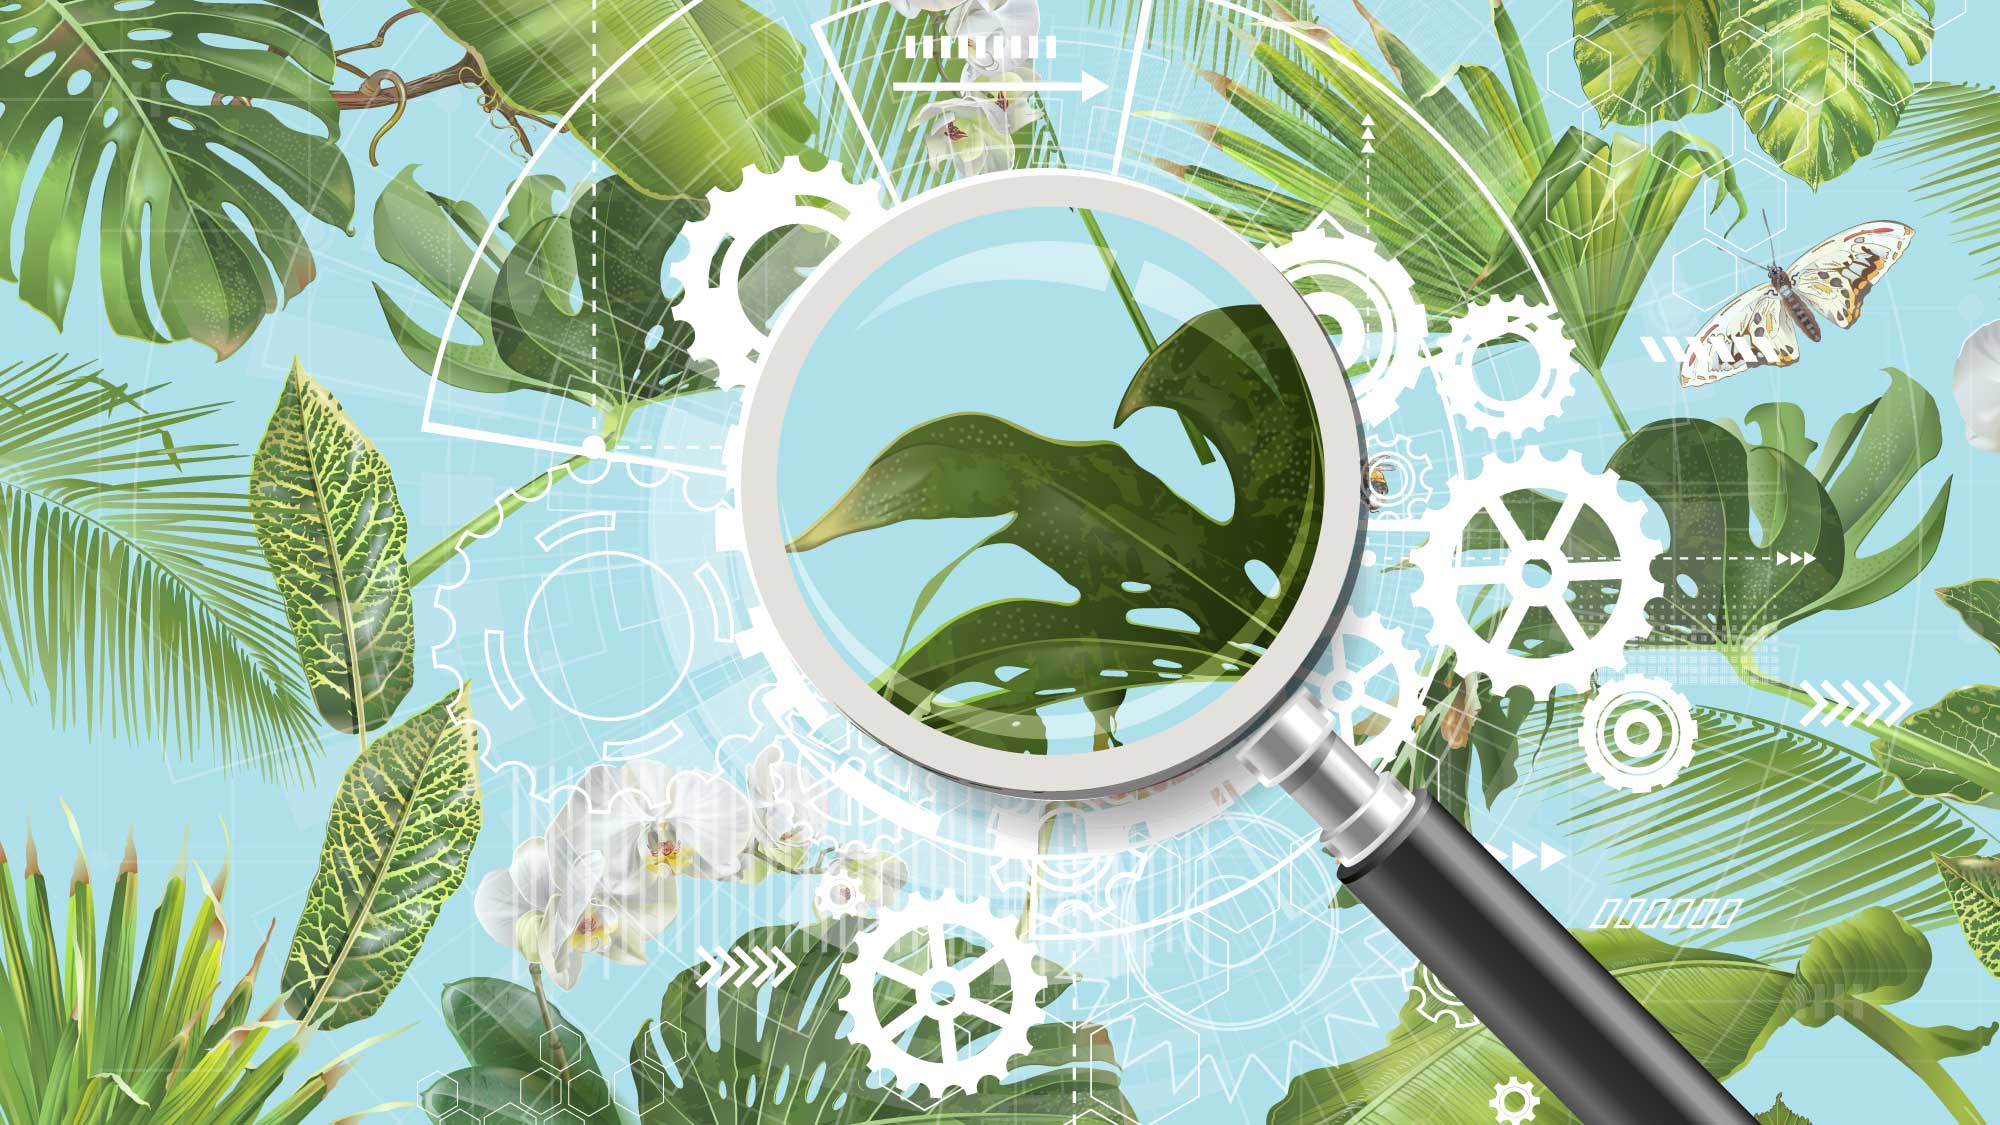 Illustration of magnifying glass and plants